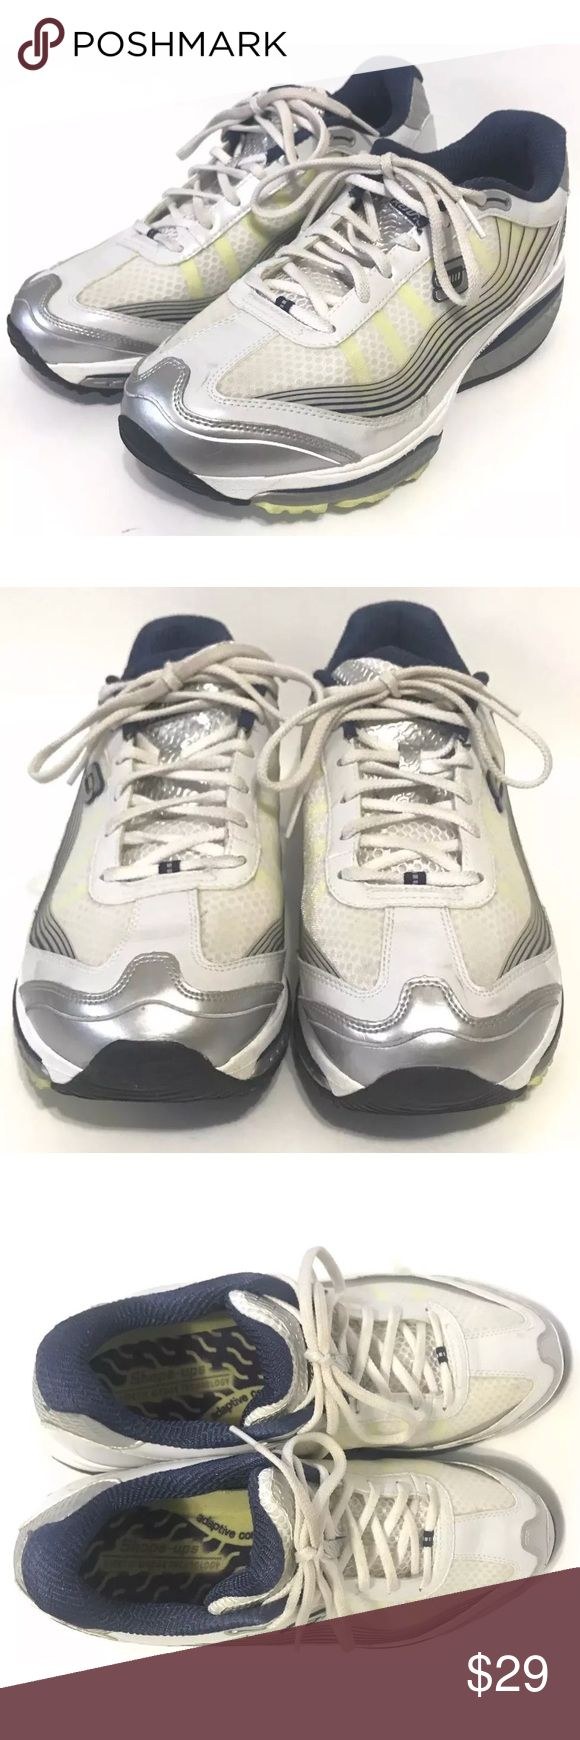 Skechers Shape-Ups Kinetic Wedge Technology SRR Women's Skechers Shape-Ups White Shoes Kinetic Wedge Technology SRR Sz 9.5  •	These shoes are in great pre-owned condition with slight wear. Please see pictures. Skechers Shoes Athletic Shoes